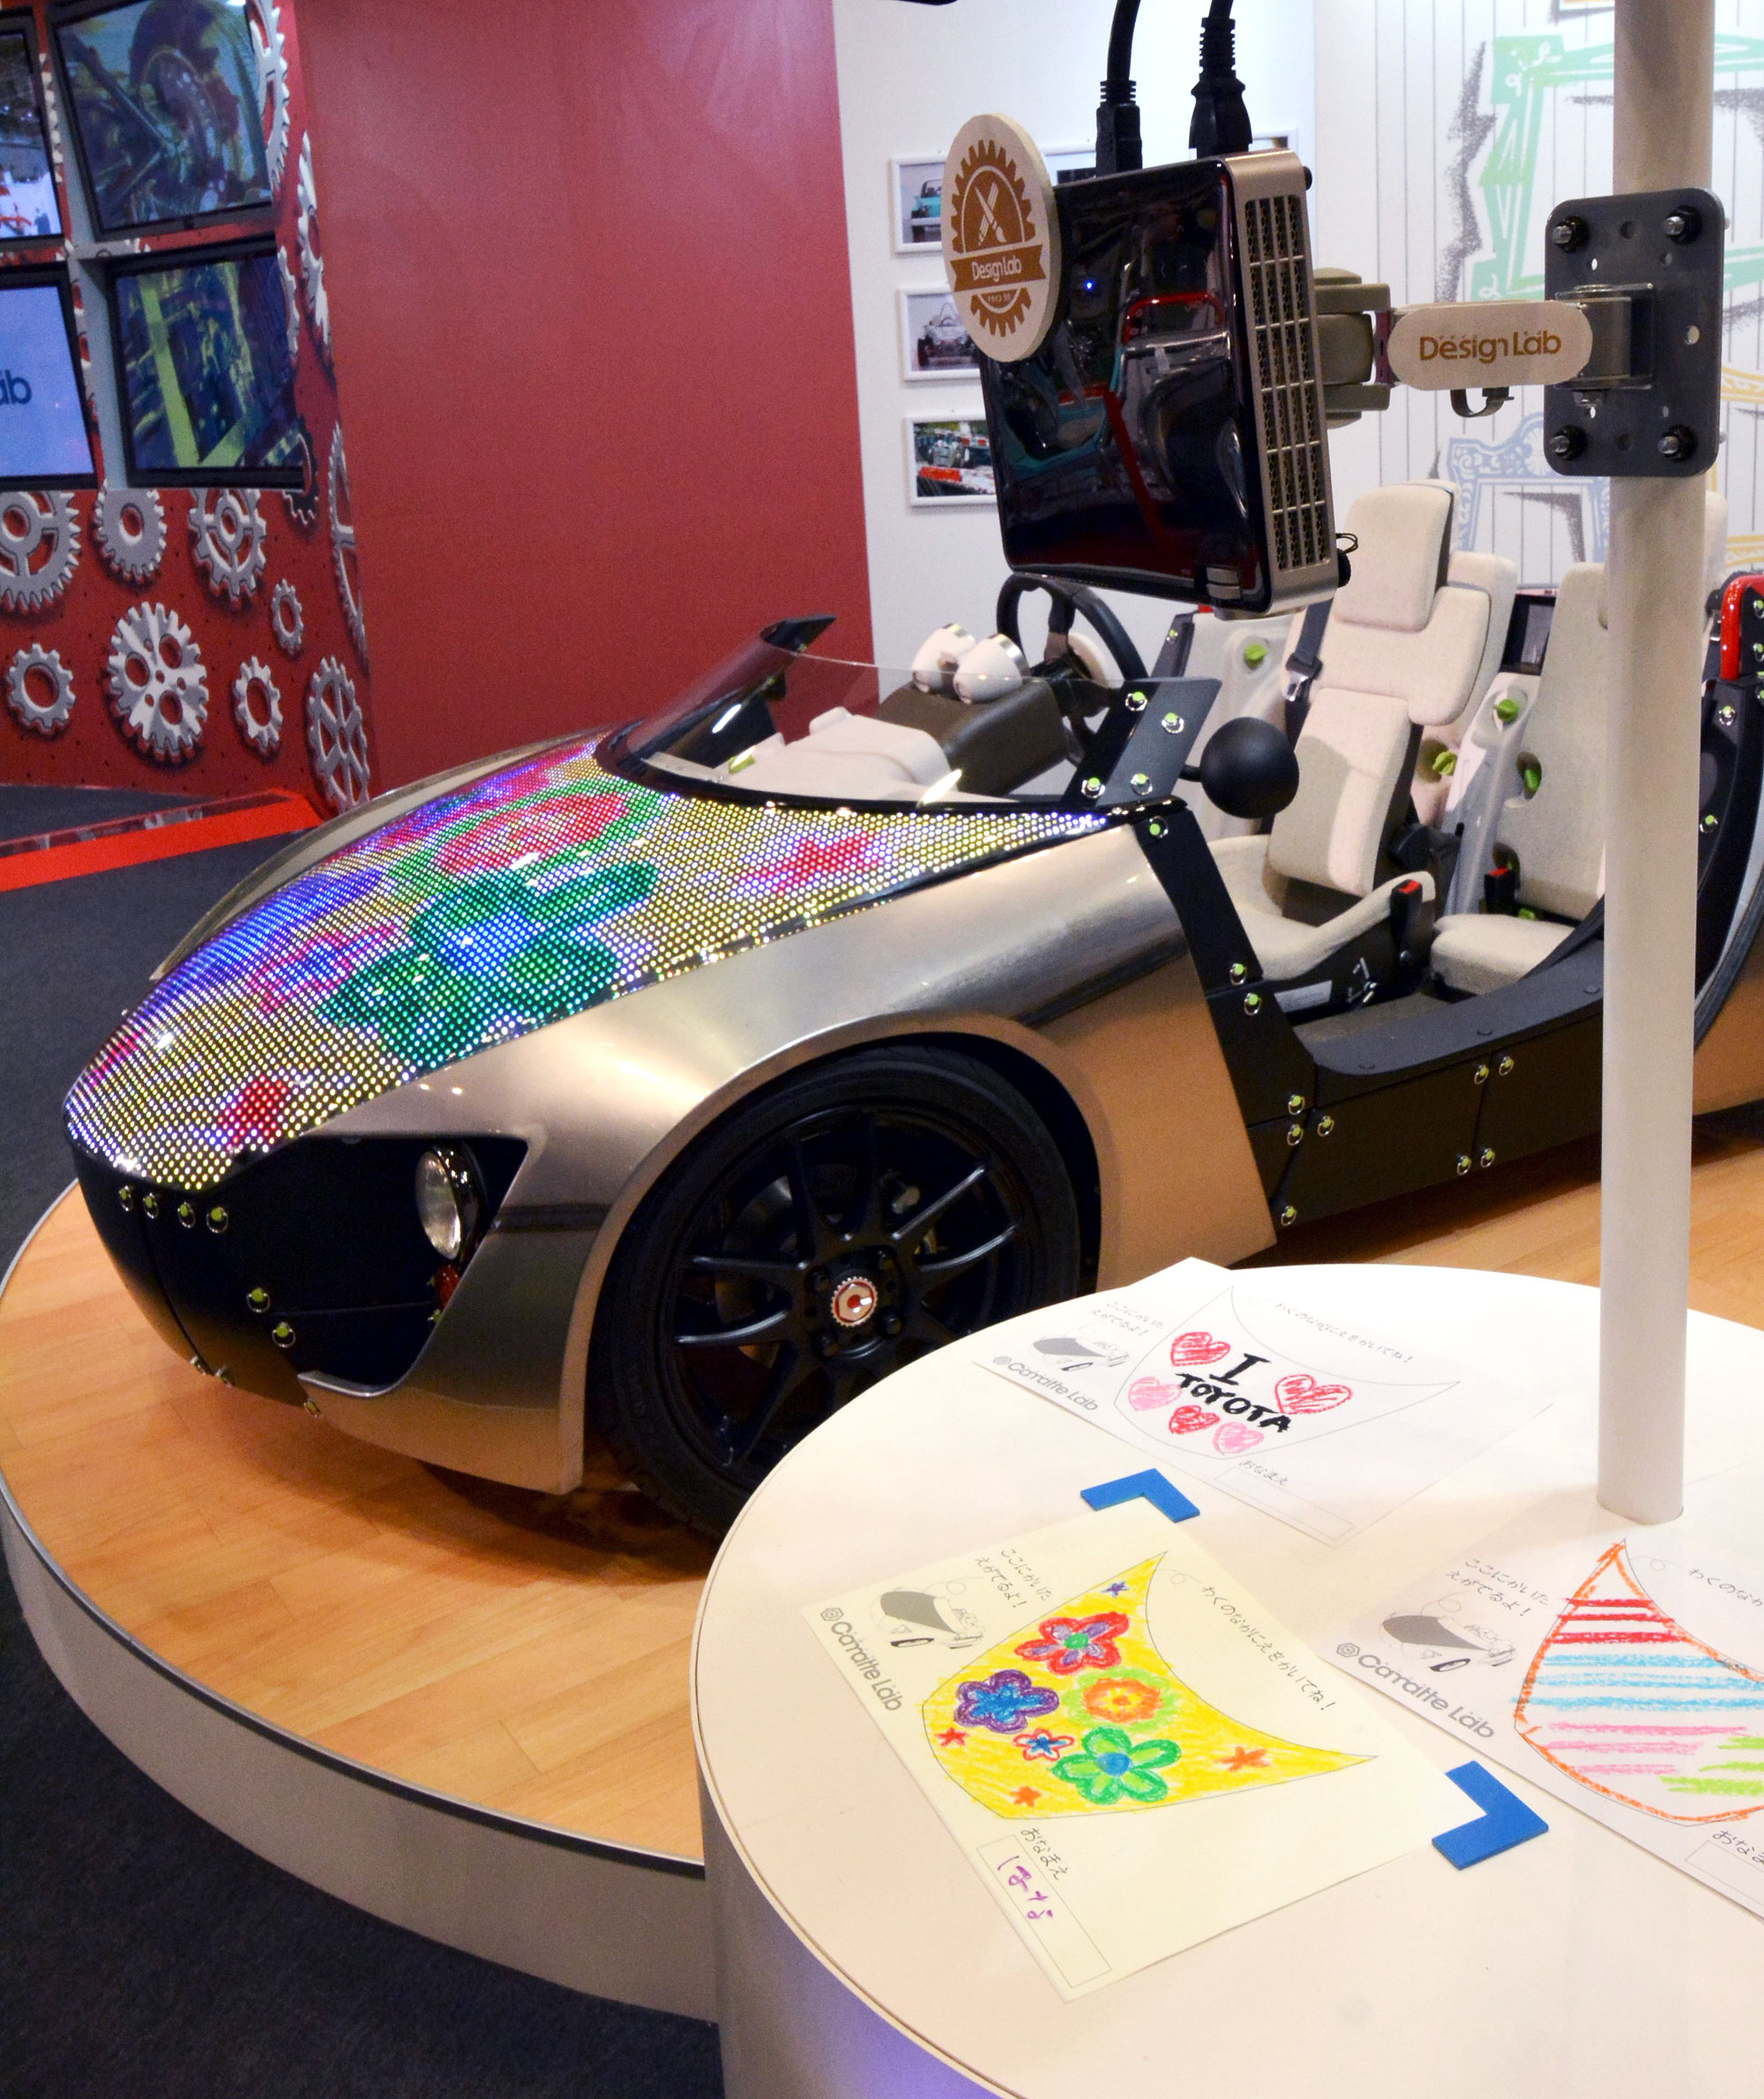 Toyota Motor Corp.'s 'Camatte57s Sport concept' is displayed with its digitally customizable LED hood, at the International Tokyo Toy Show in Tokyo, Japan, June 12 2014.